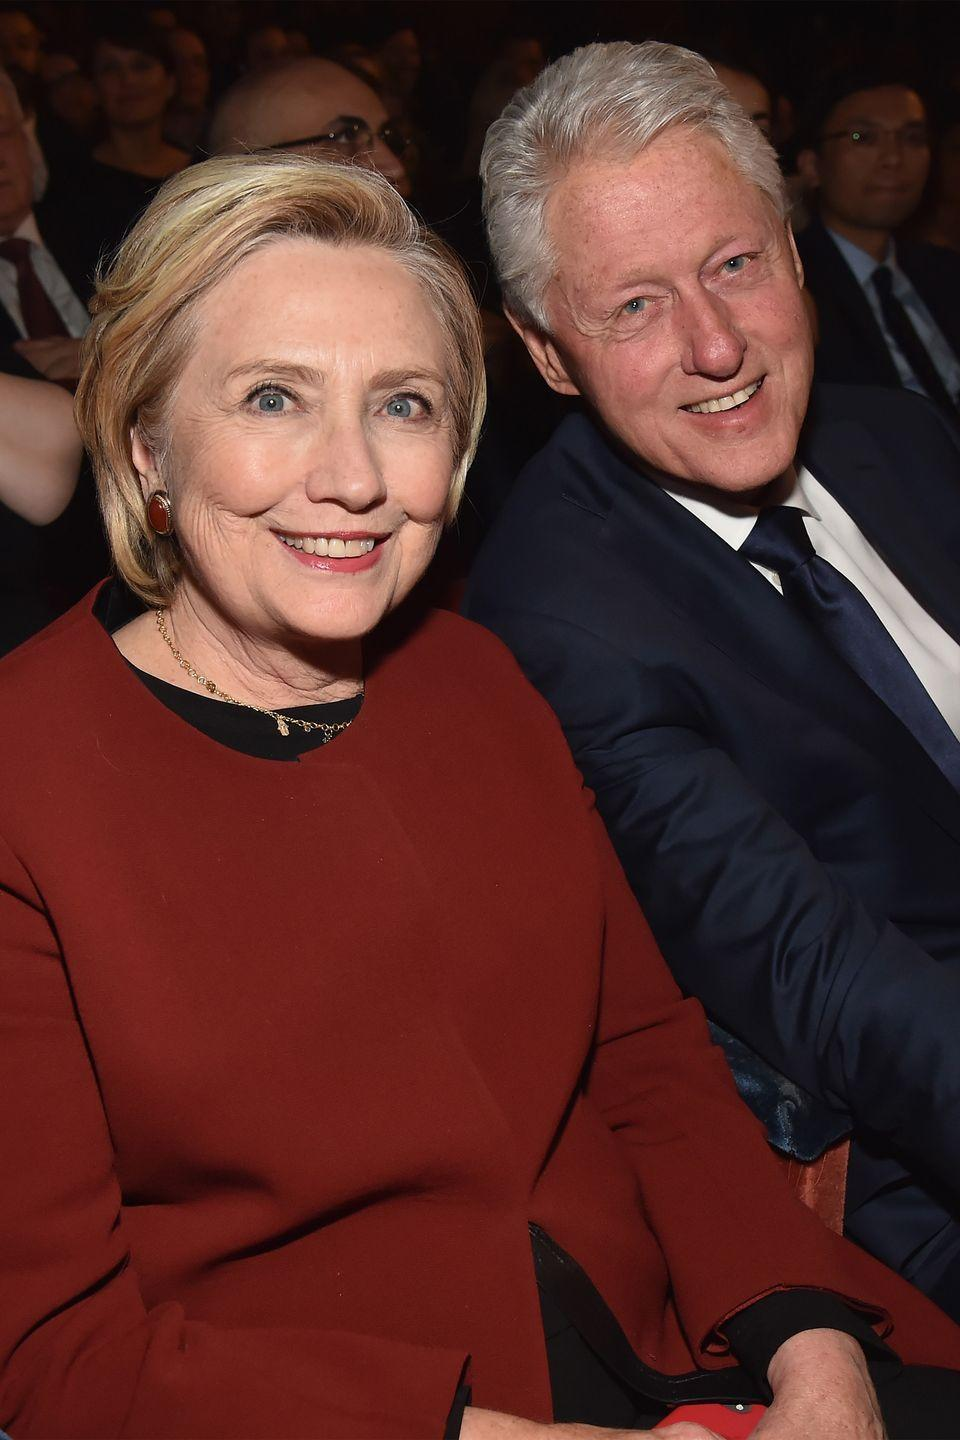 "<p>These two hardly need an introduction, as the Clintons are a true political powerhouse. Their 40-year-plus relationship has seen some major wins and a few hard spots, but together they have overcome these roadblocks.</p><p>""There were times that I was deeply unsure about whether our marriage could or should survive,"" she writes. ""But on those days, I asked myself the questions that mattered to me: Do I still love him? And can I still be in this marriage without becoming unrecognizable to myself—twisted by anger, resentment, or remoteness? The answers were always yes,"" <a href=""https://www.townandcountrymag.com/society/politics/a12217184/hillary-clinton-book-what-happened-quotes/"" rel=""nofollow noopener"" target=""_blank"" data-ylk=""slk:Hillary wrote"" class=""link rapid-noclick-resp"">Hillary wrote</a> of her husband in her third memoir <em><a href=""https://www.amazon.com/What-Happened-Hillary-Rodham-Clinton/dp/1501175564?tag=syn-yahoo-20&ascsubtag=%5Bartid%7C10063.g.34588738%5Bsrc%7Cyahoo-us"" rel=""nofollow noopener"" target=""_blank"" data-ylk=""slk:What Happened"" class=""link rapid-noclick-resp"">What Happened</a></em>.</p>"